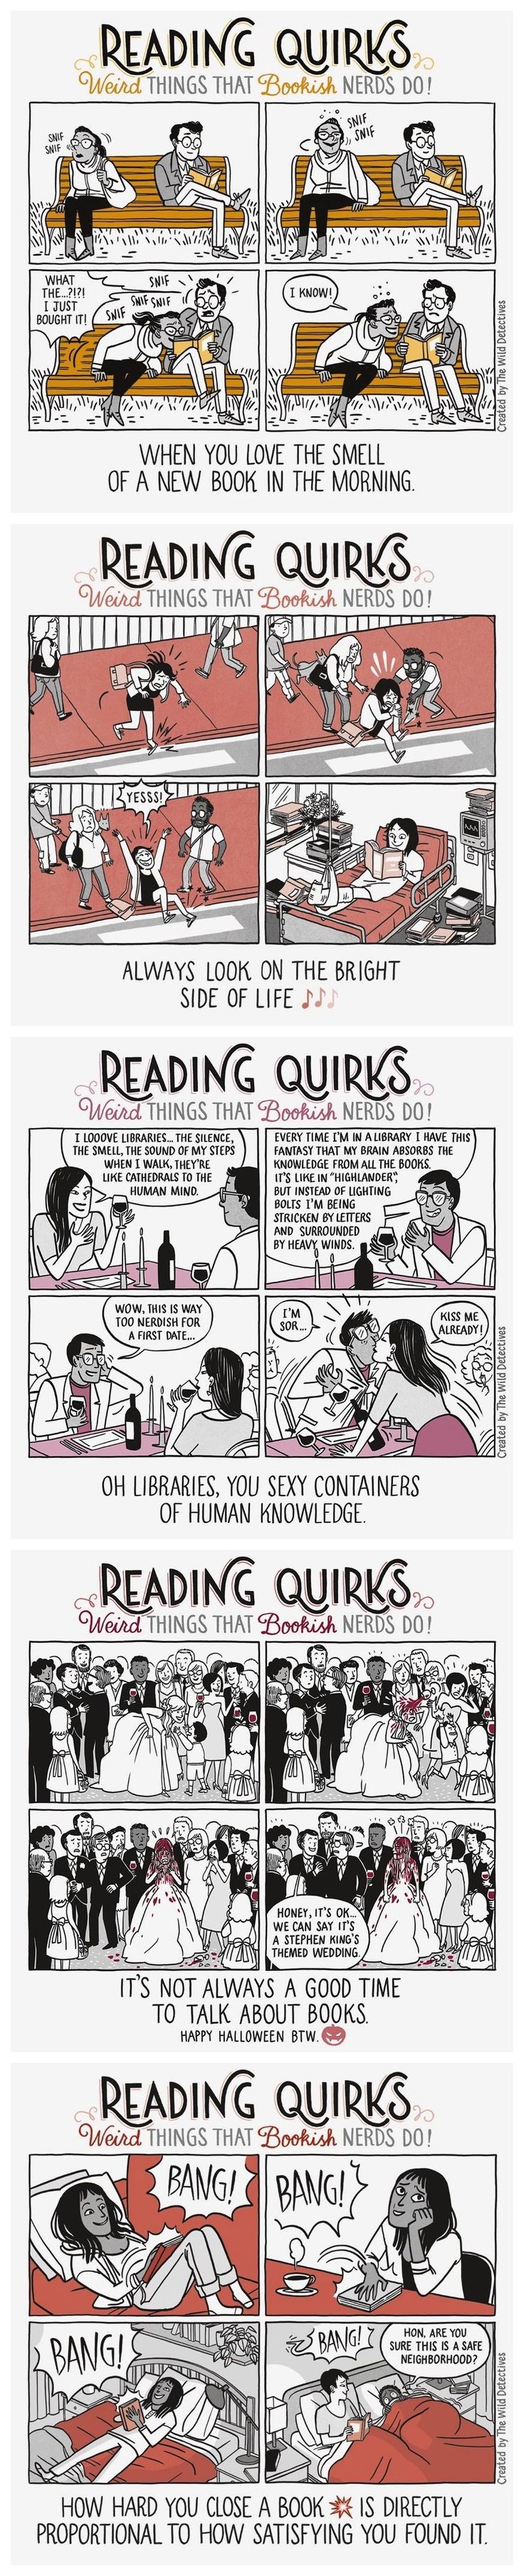 Book | 著作 | книга | Livre | Libro | Read | 読む | Lire | читать | Leggere | Leer | Reading | Imagination | Reading Quirks webcomic